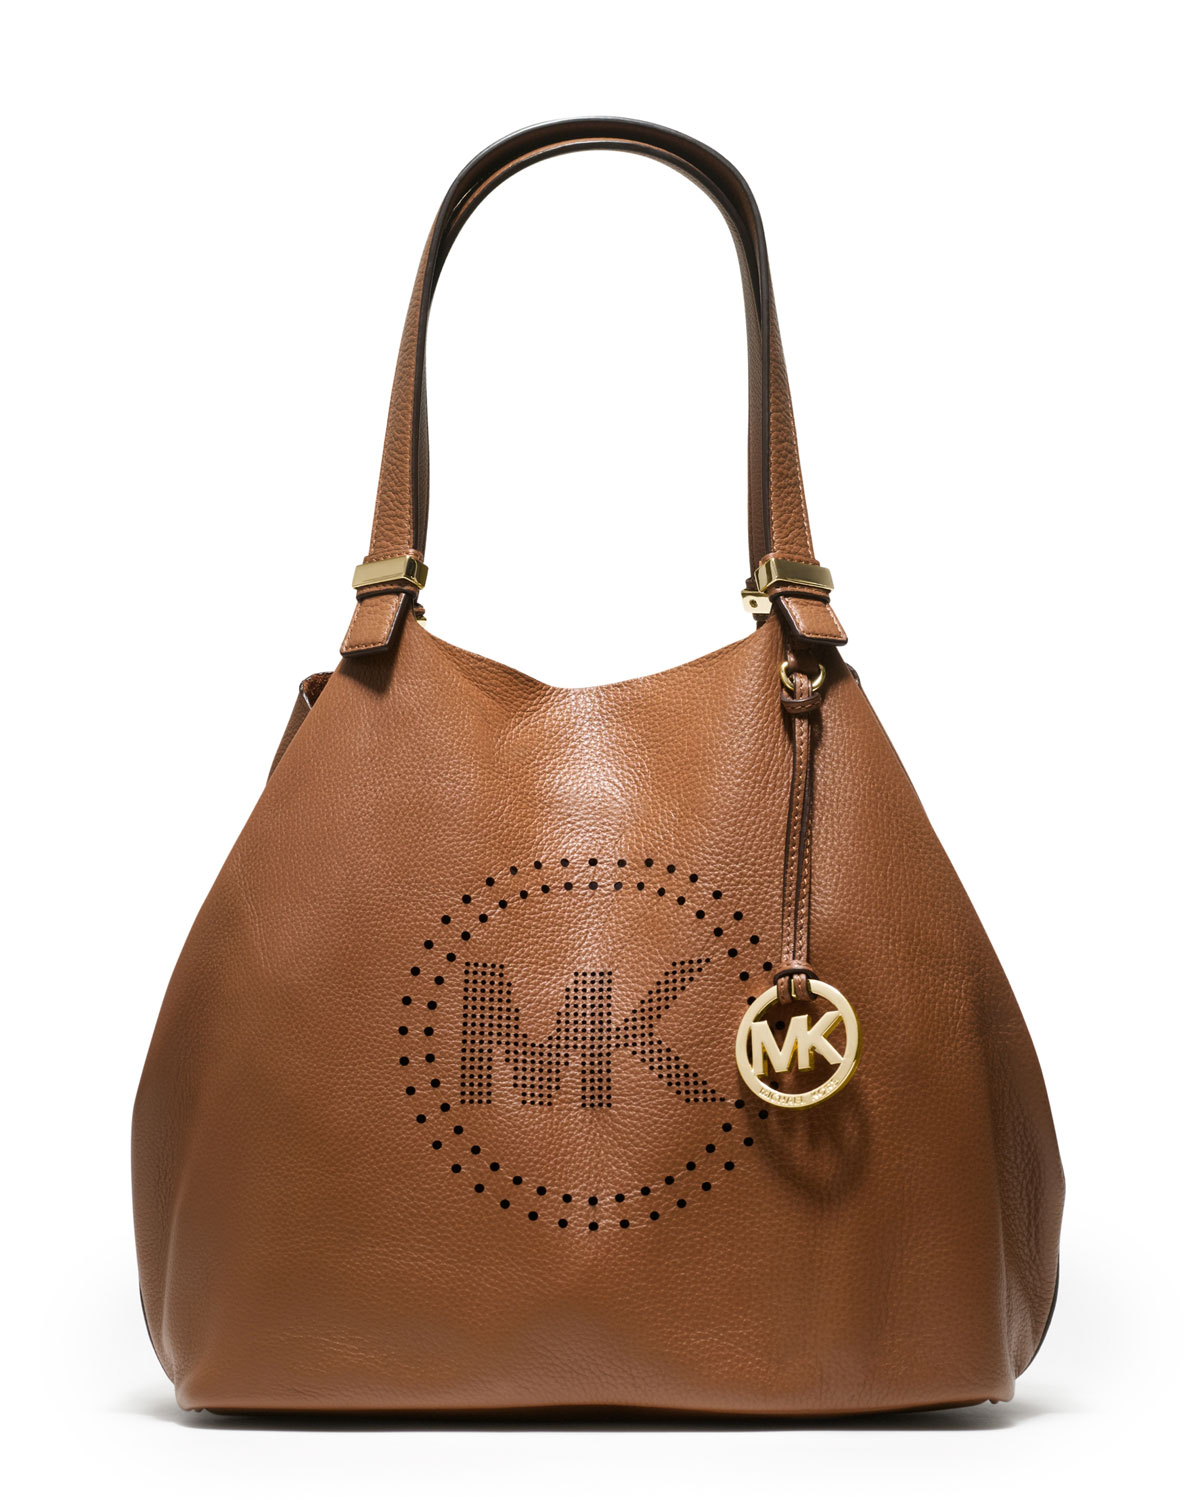 theresaprasil commented on 8/21/ I have had my heart set on a Michael Kors purses but didn't want to spend a fortune or pay full price and low and behold I opened up my email from jestinebordersyz47zv.ga and there was notification of a sale.